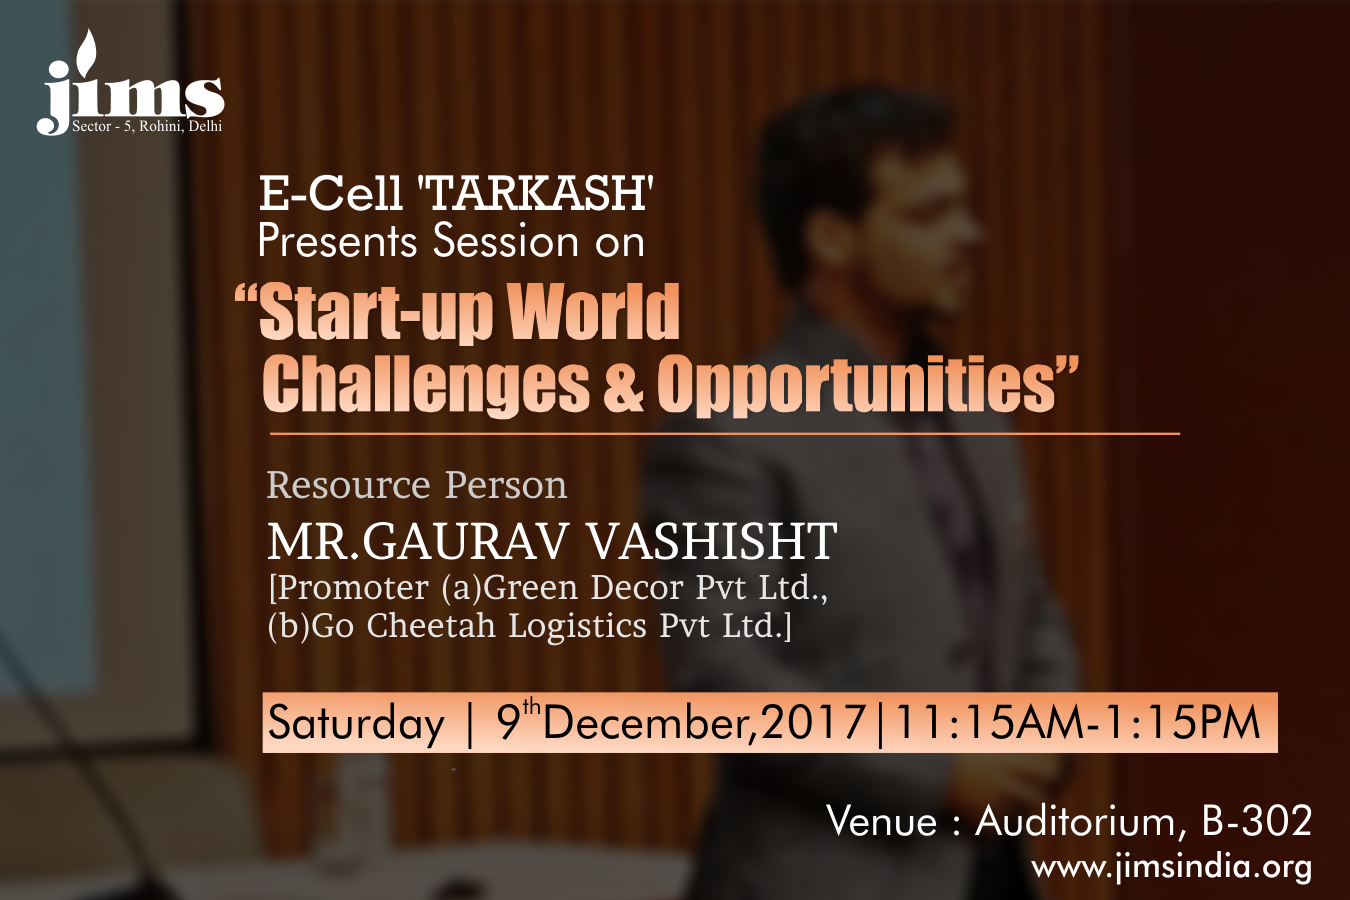 JIMS E-CELL TARKASH Presents START-UP WORLD - CHALLENGES & OPPORTUNITIES